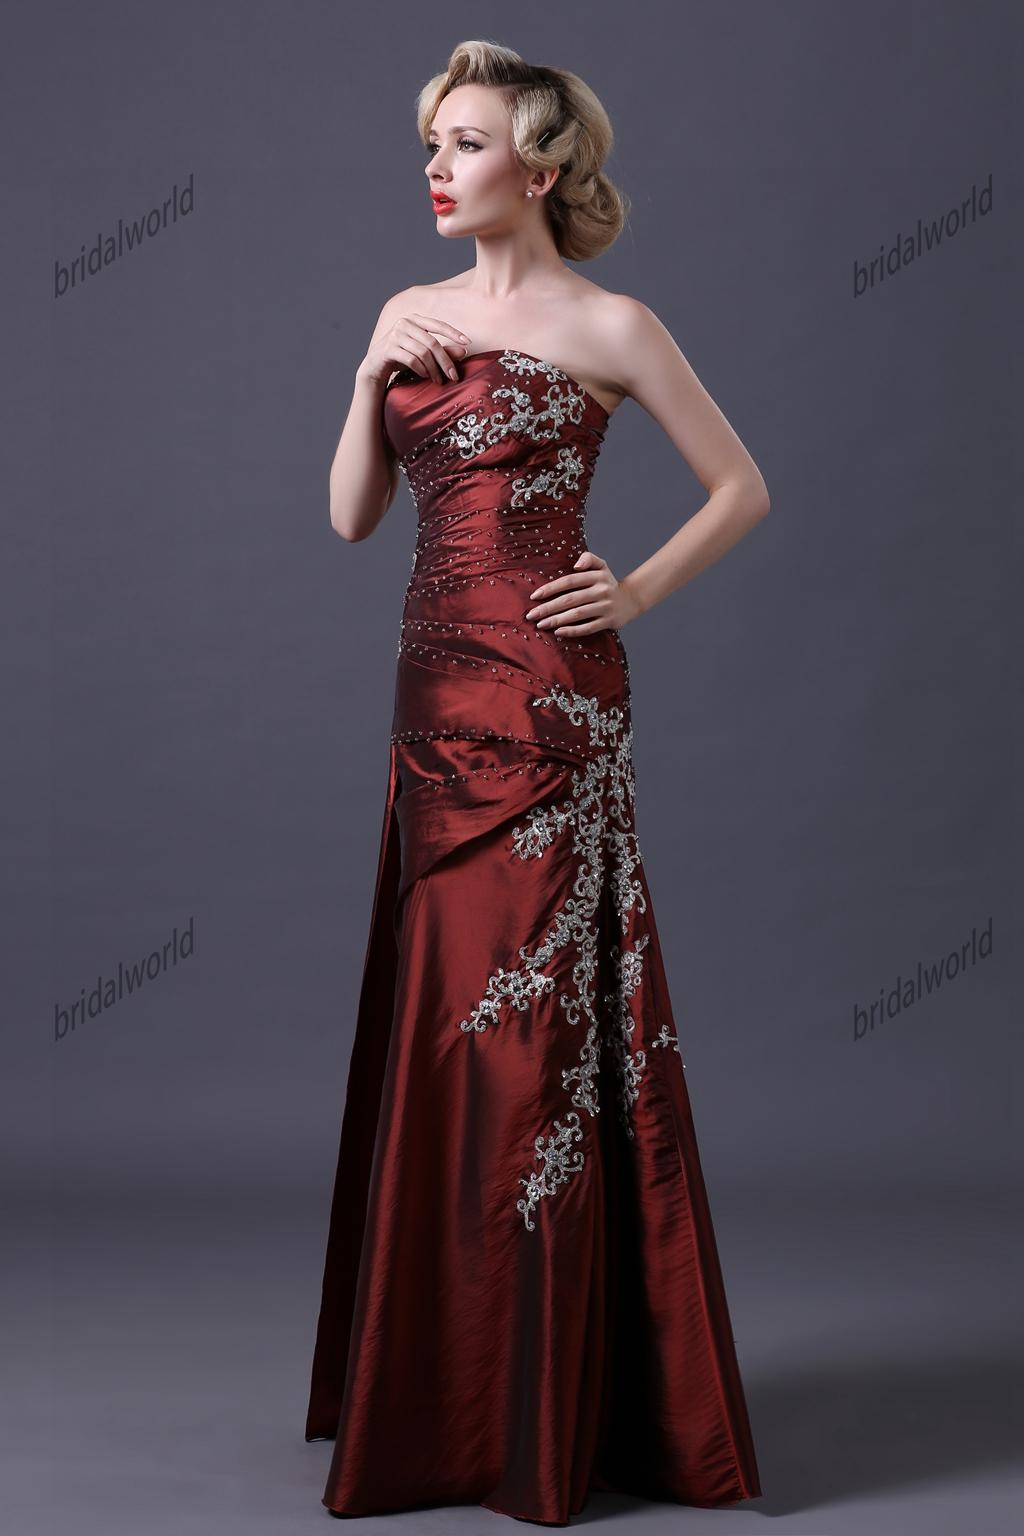 Burgundy Mother of the Bride Dresses Embroidery Beaded Evening Gowns Taffeta A-line Mother of Groom Dresses Floor Length Long Formal Gowns